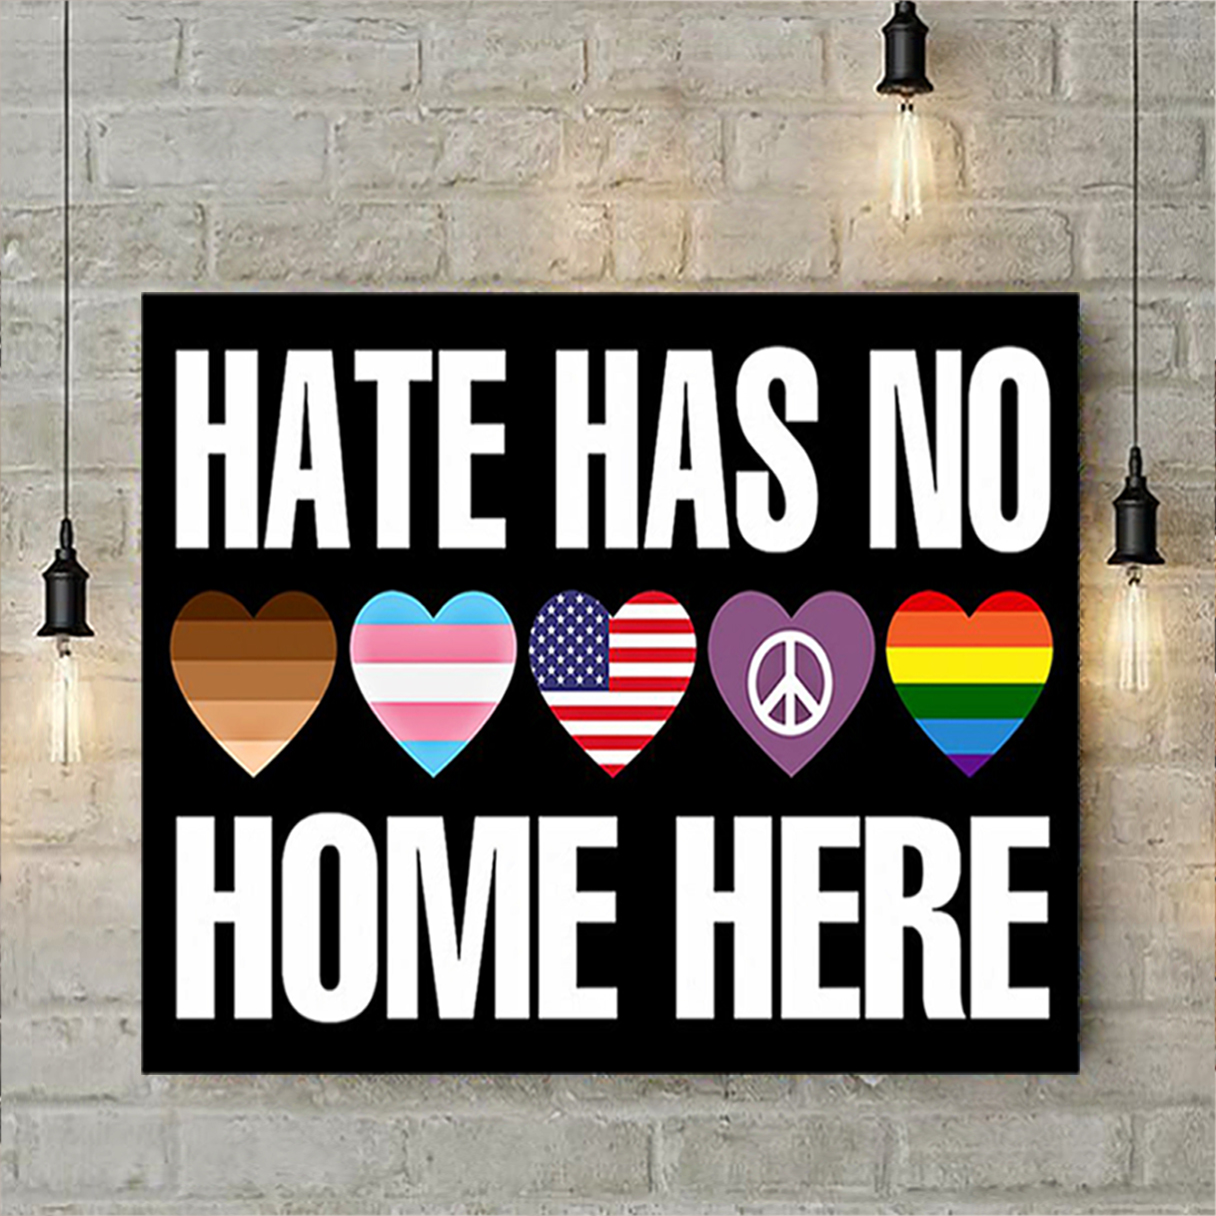 Hate has no home here poster A3